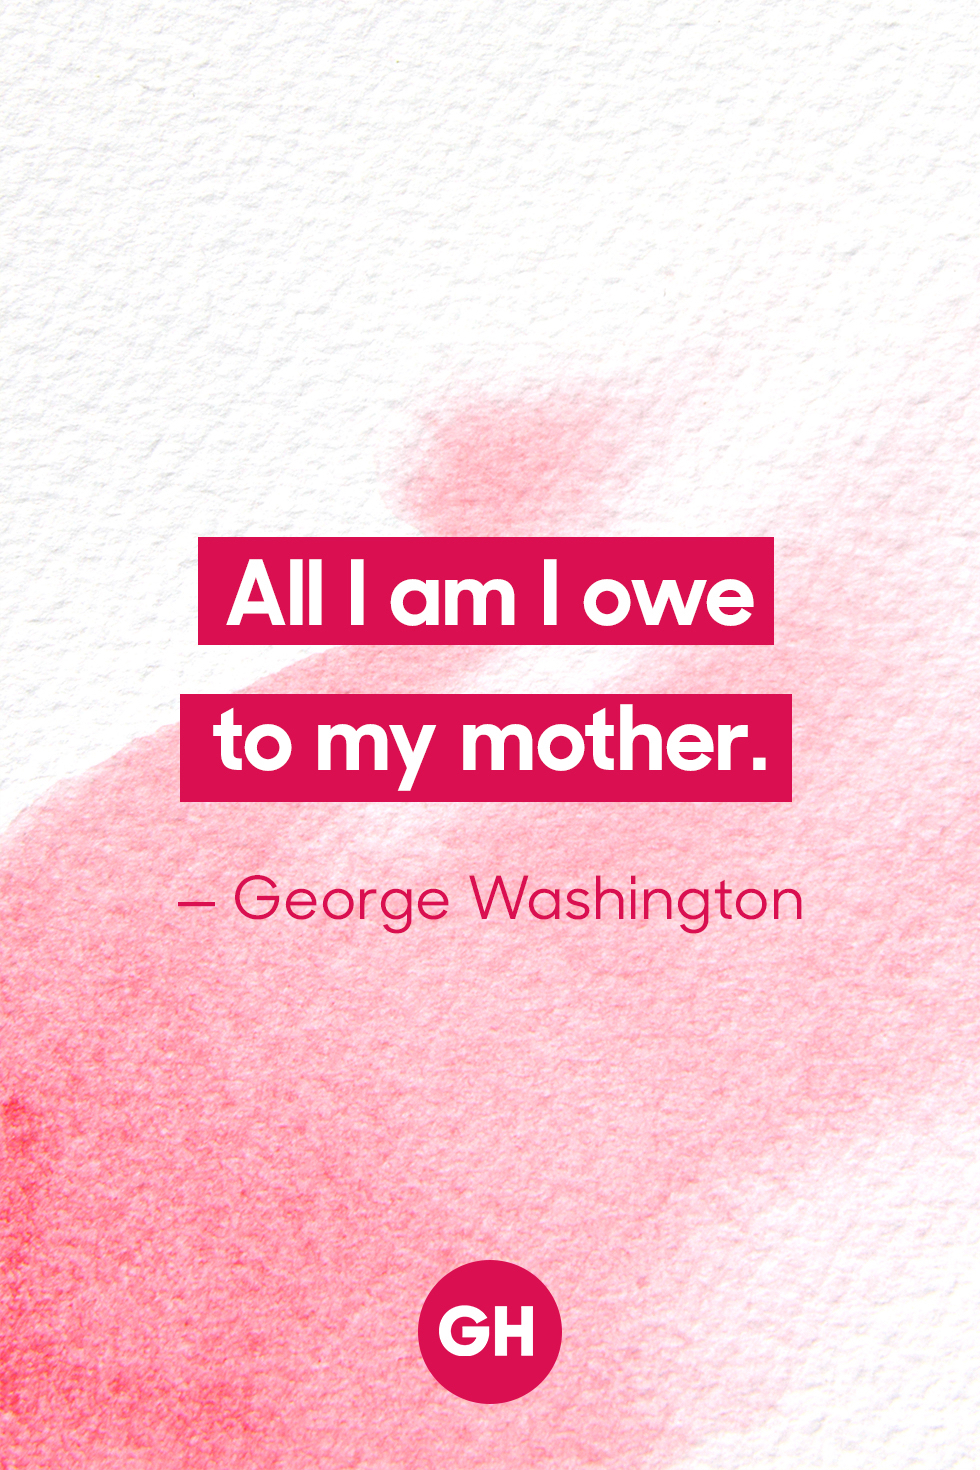 Mother Love Quotes 14 Best Mother's Day Quotes  Sayings About Motherhood